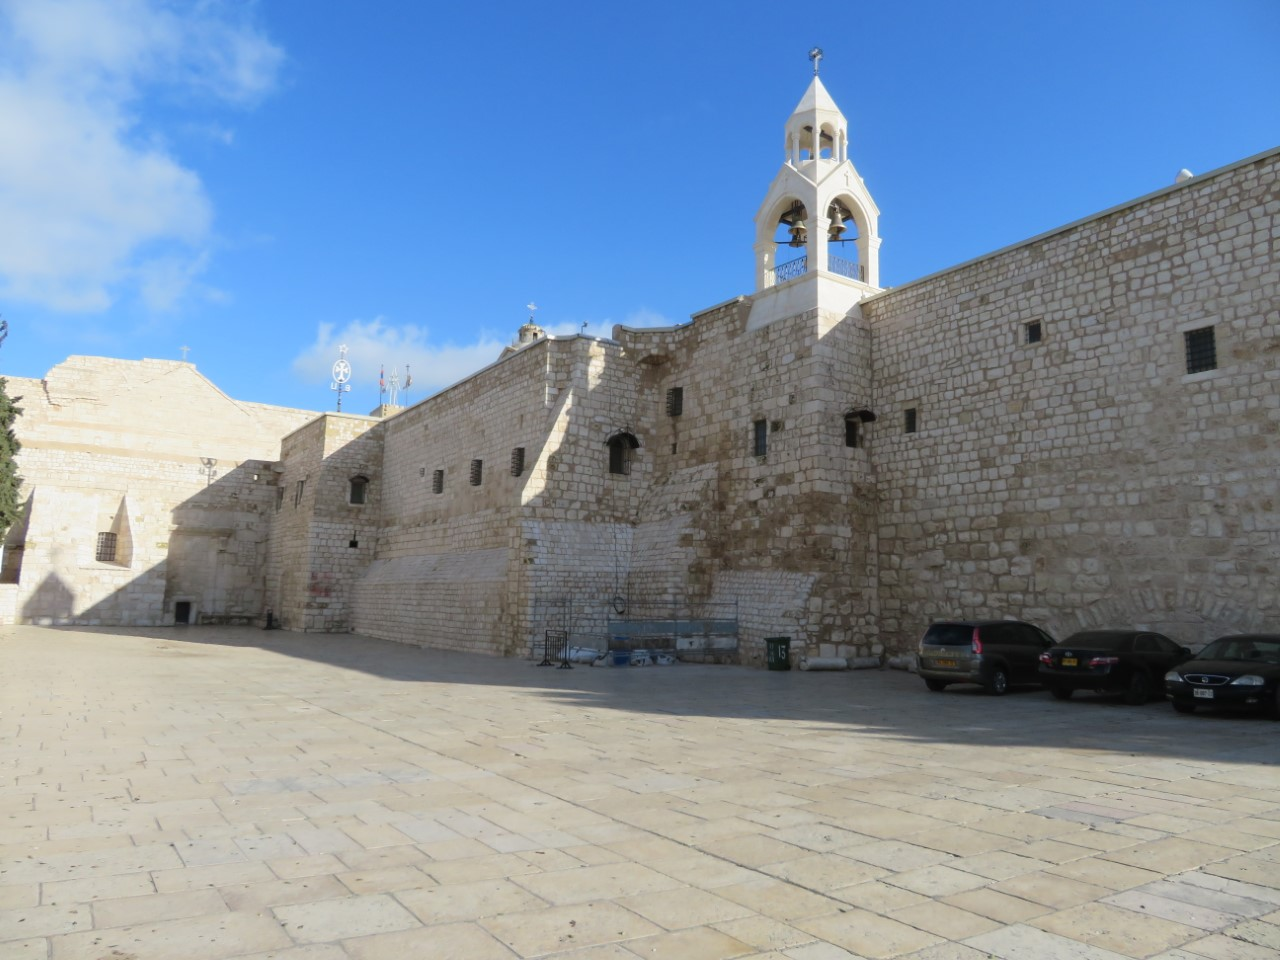 The Church of the Nativity in Bethlehem, devoid of pilgrims and tourists.